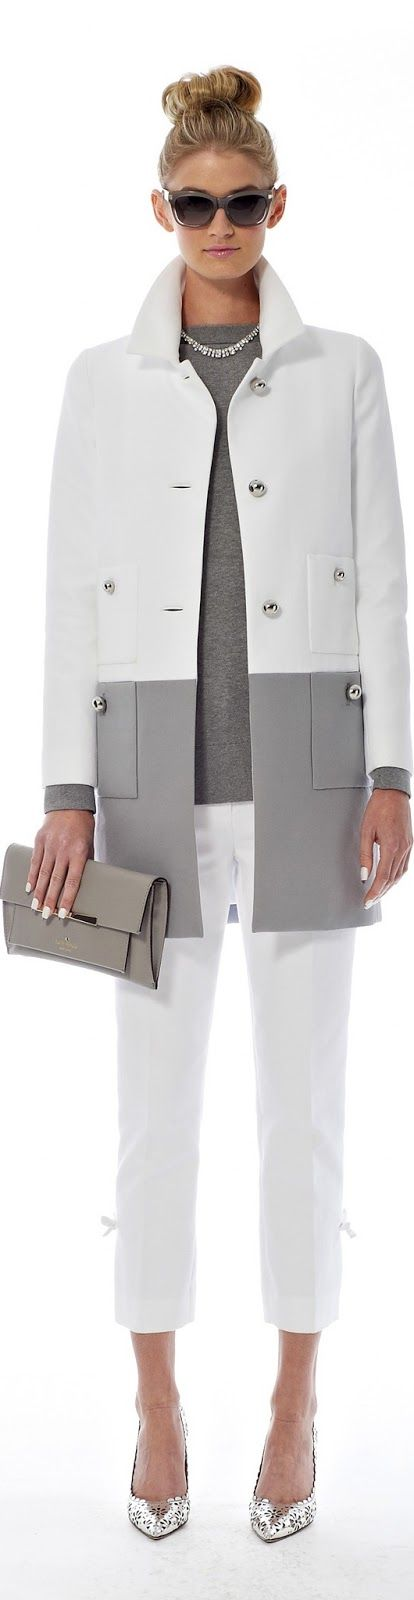 Kate Spade |  Spring 2014 RTW |=Beautiful neutral colour blocking.  To increase wearability, could do coat as removable double layer.